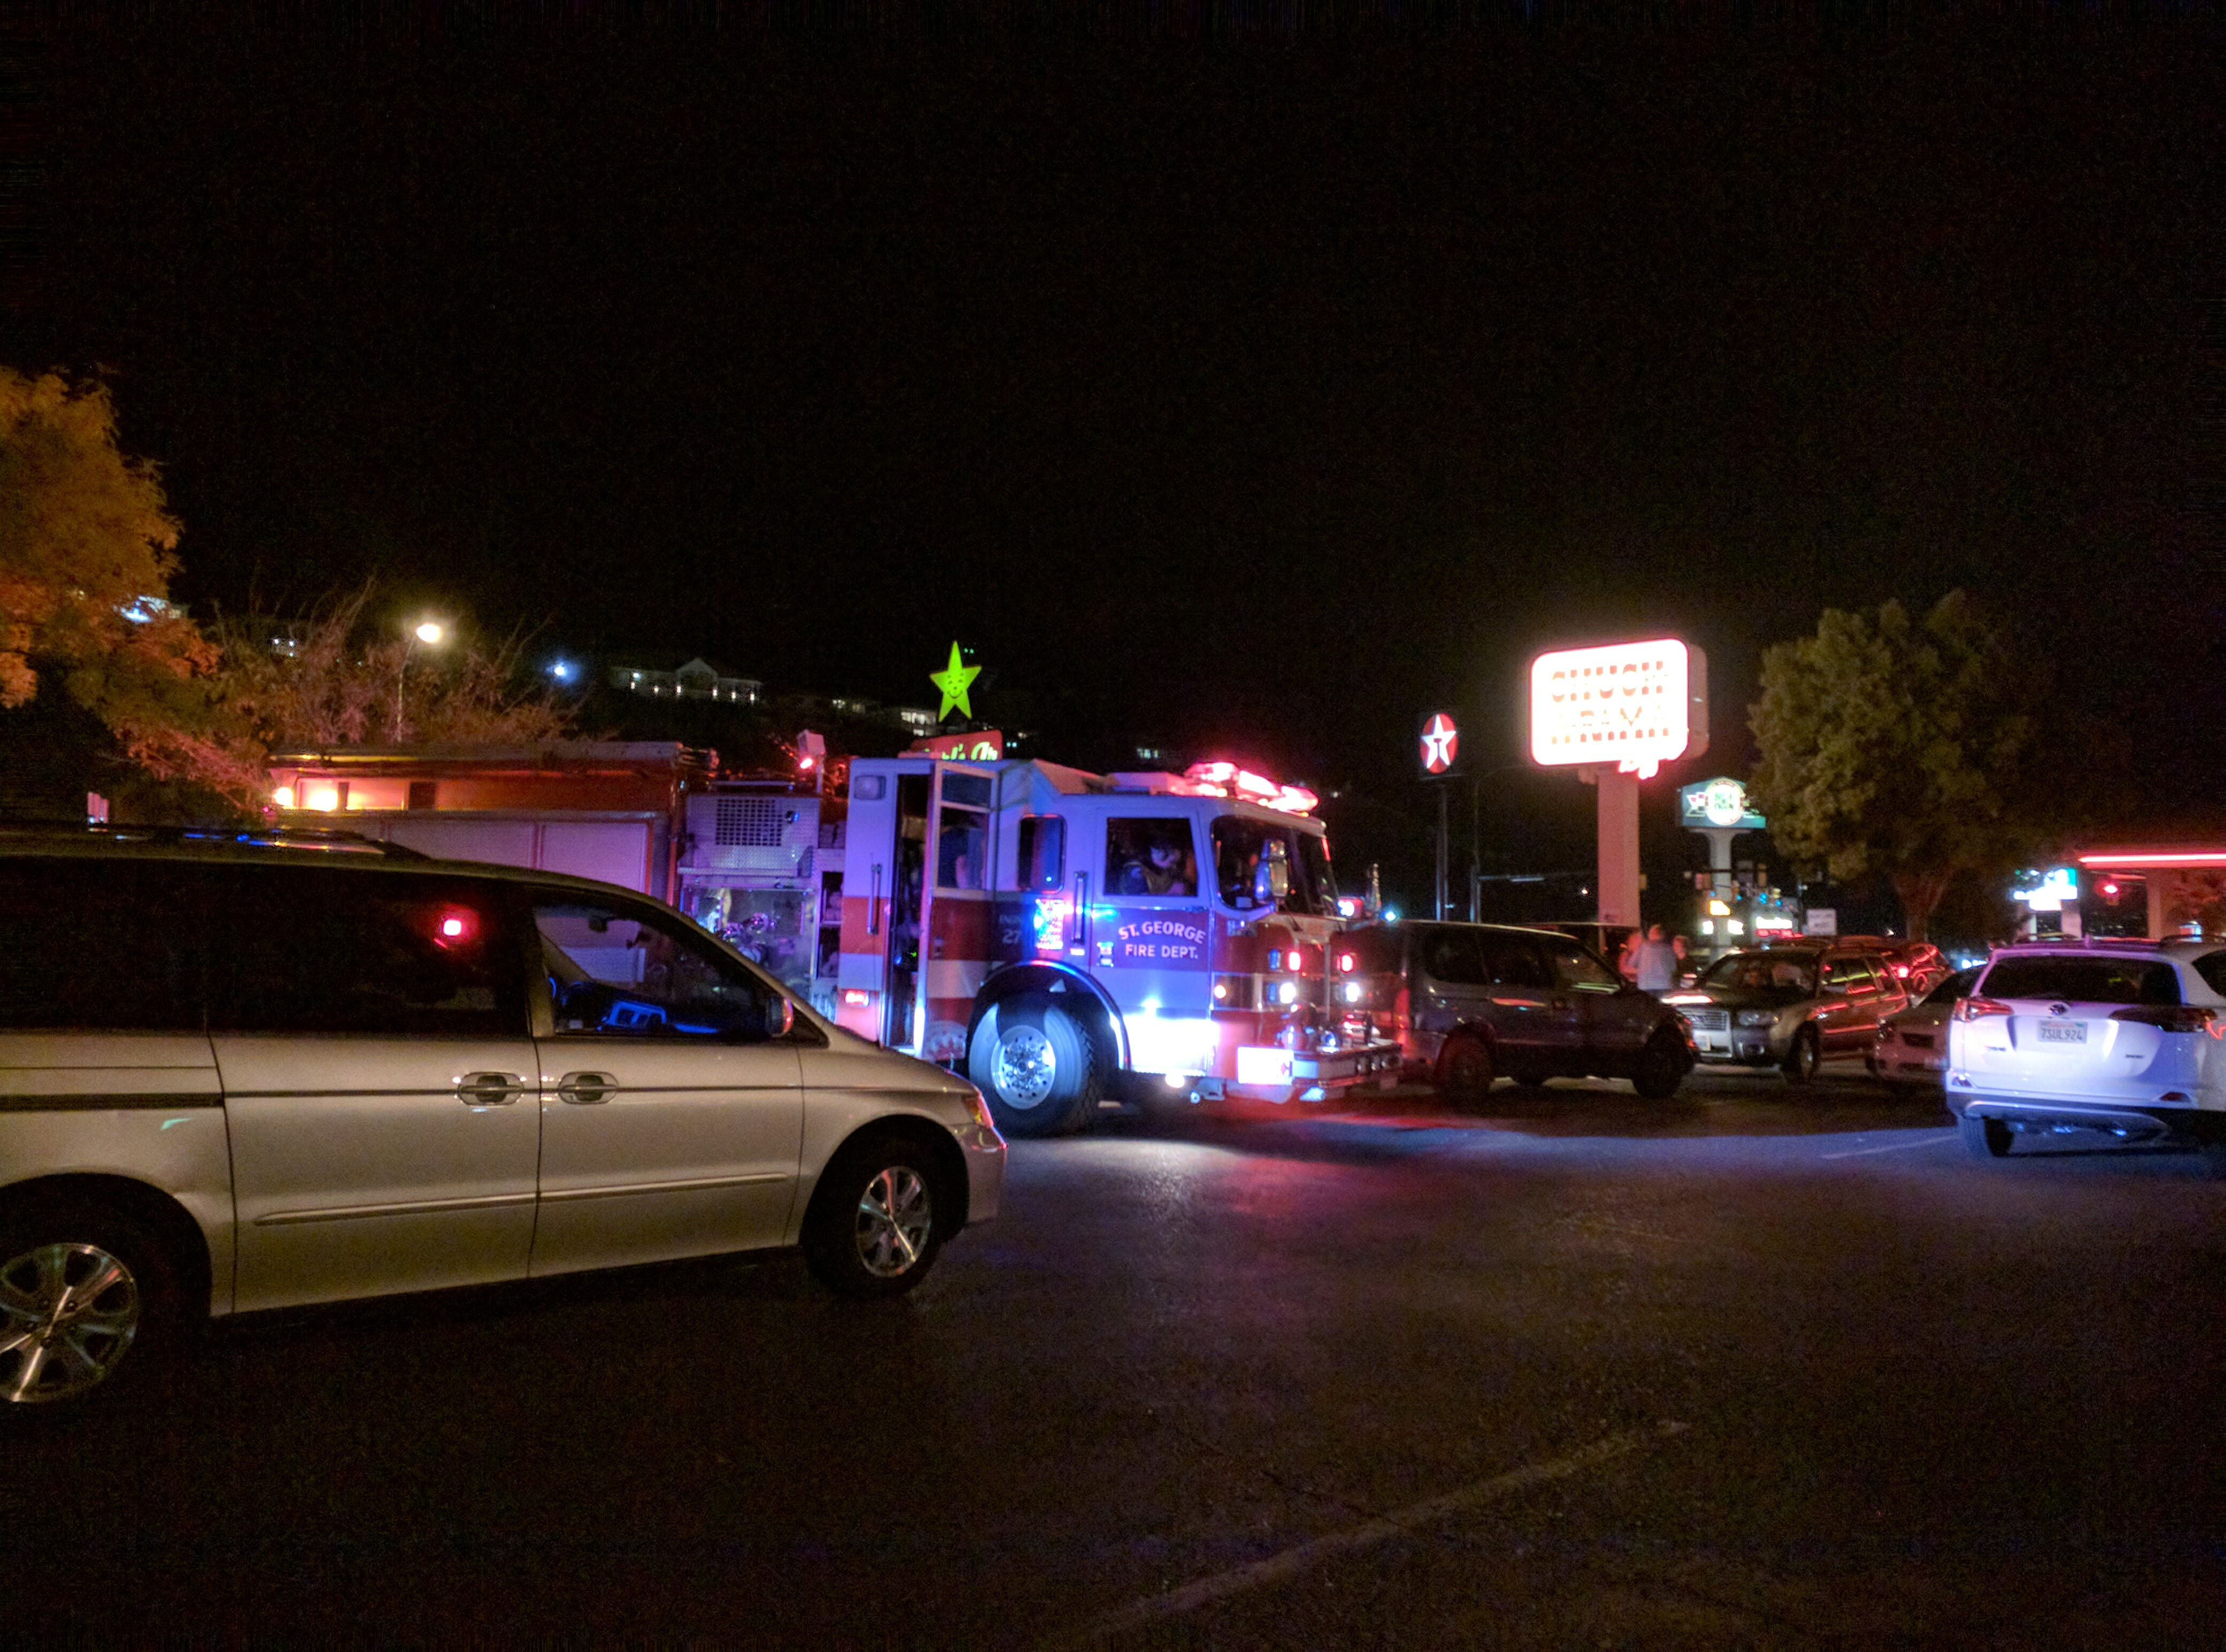 Emergency personnel respond after a woman was hit by a car in a parking lot, St. George, Utah, Nov. 3, 2016 | St. George News